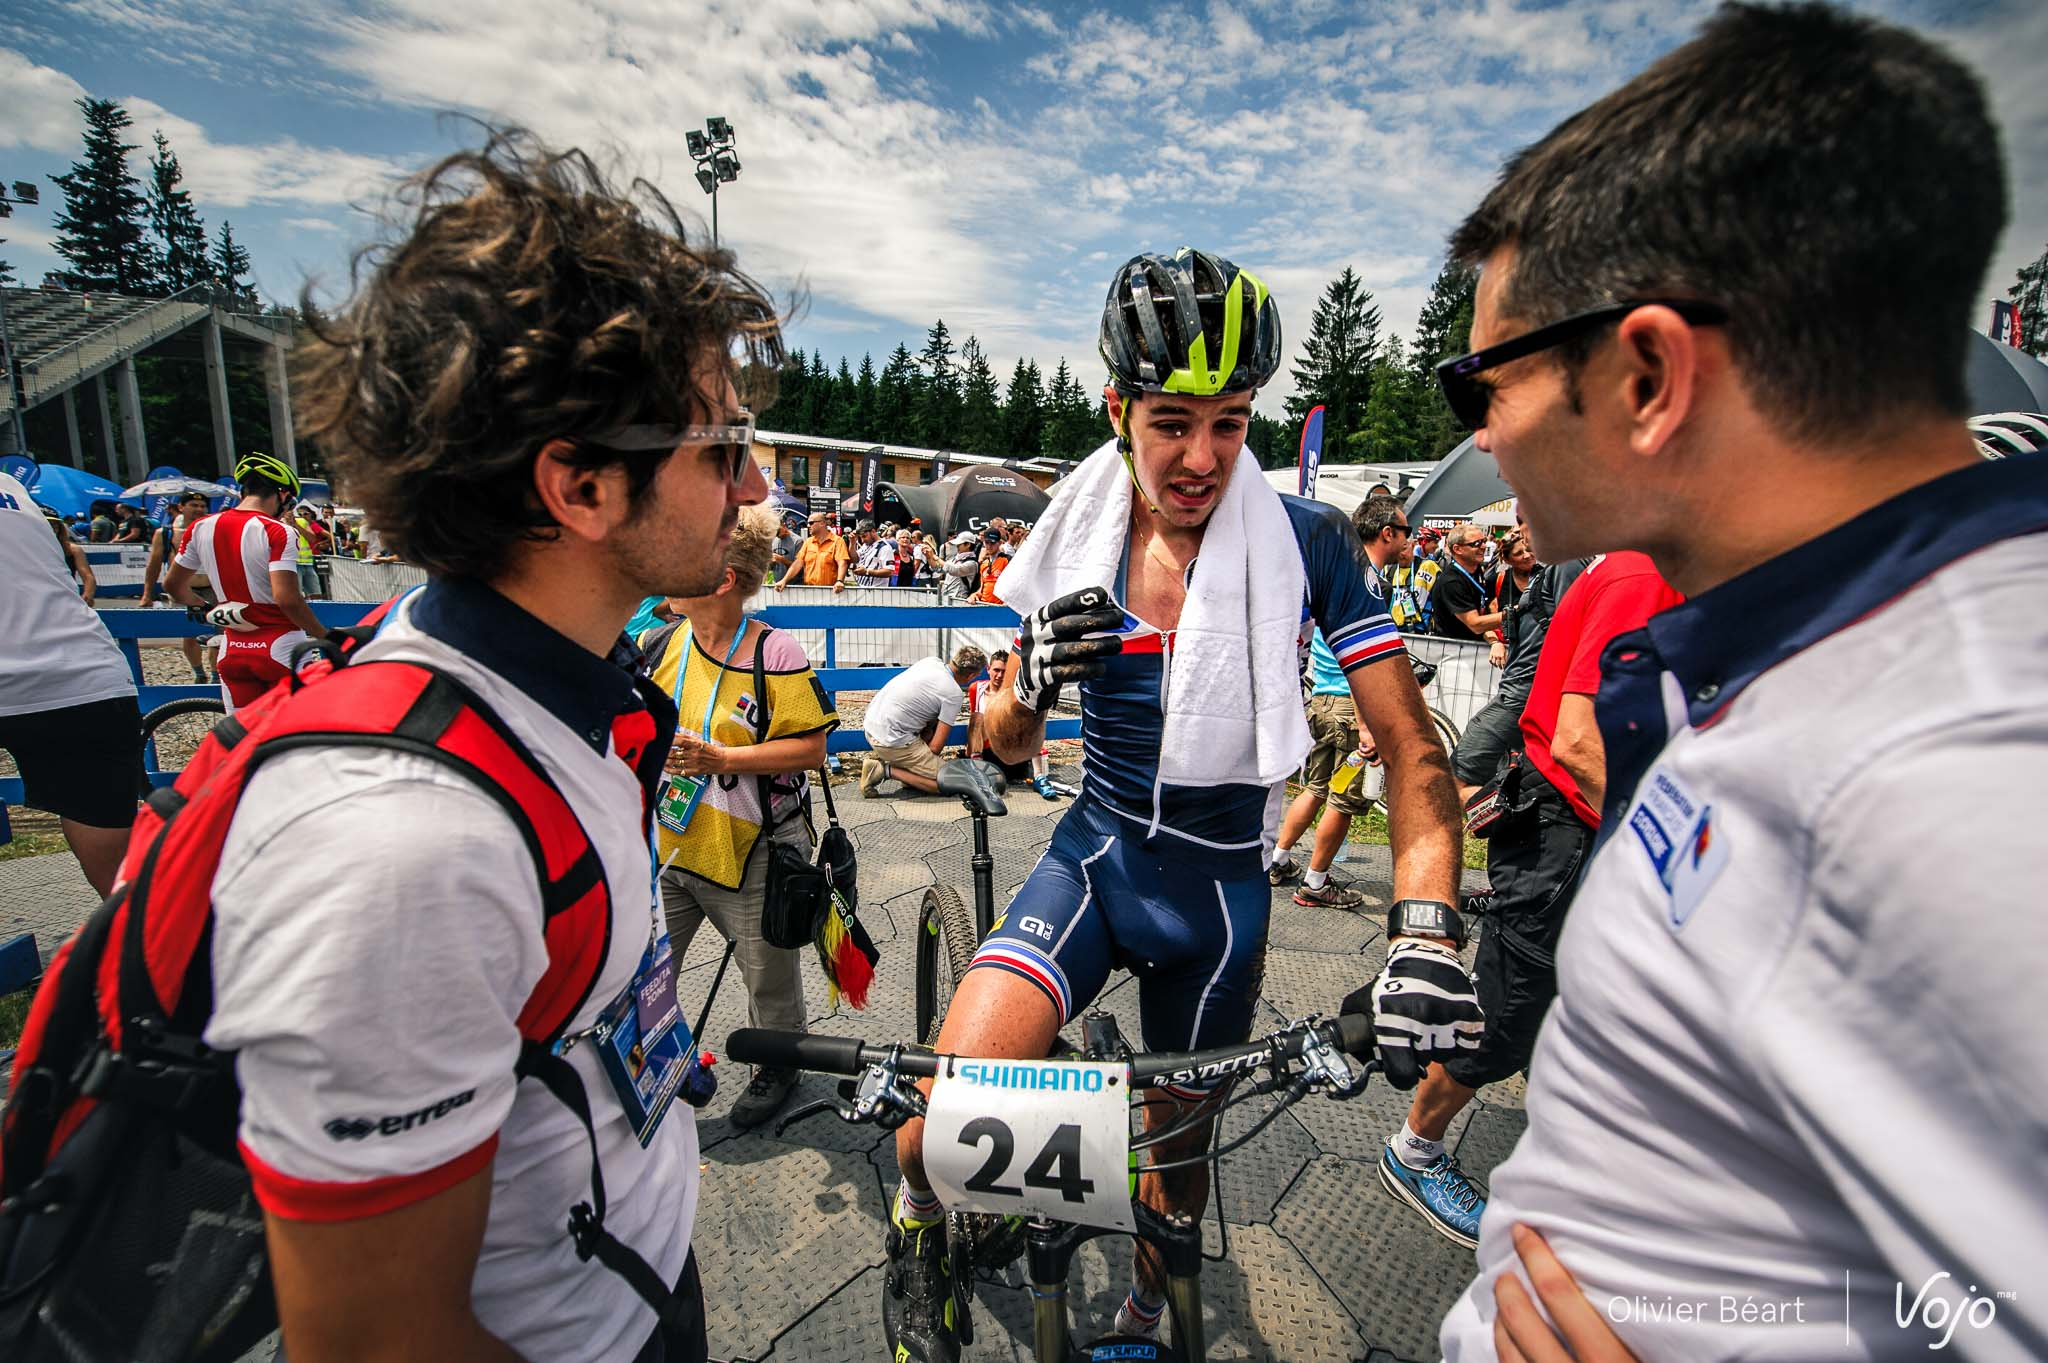 Nove_Mesto_Worlds_2016_U23_Men_Koretzky_Gaze_Copyright_OBeart_VojoMag-58